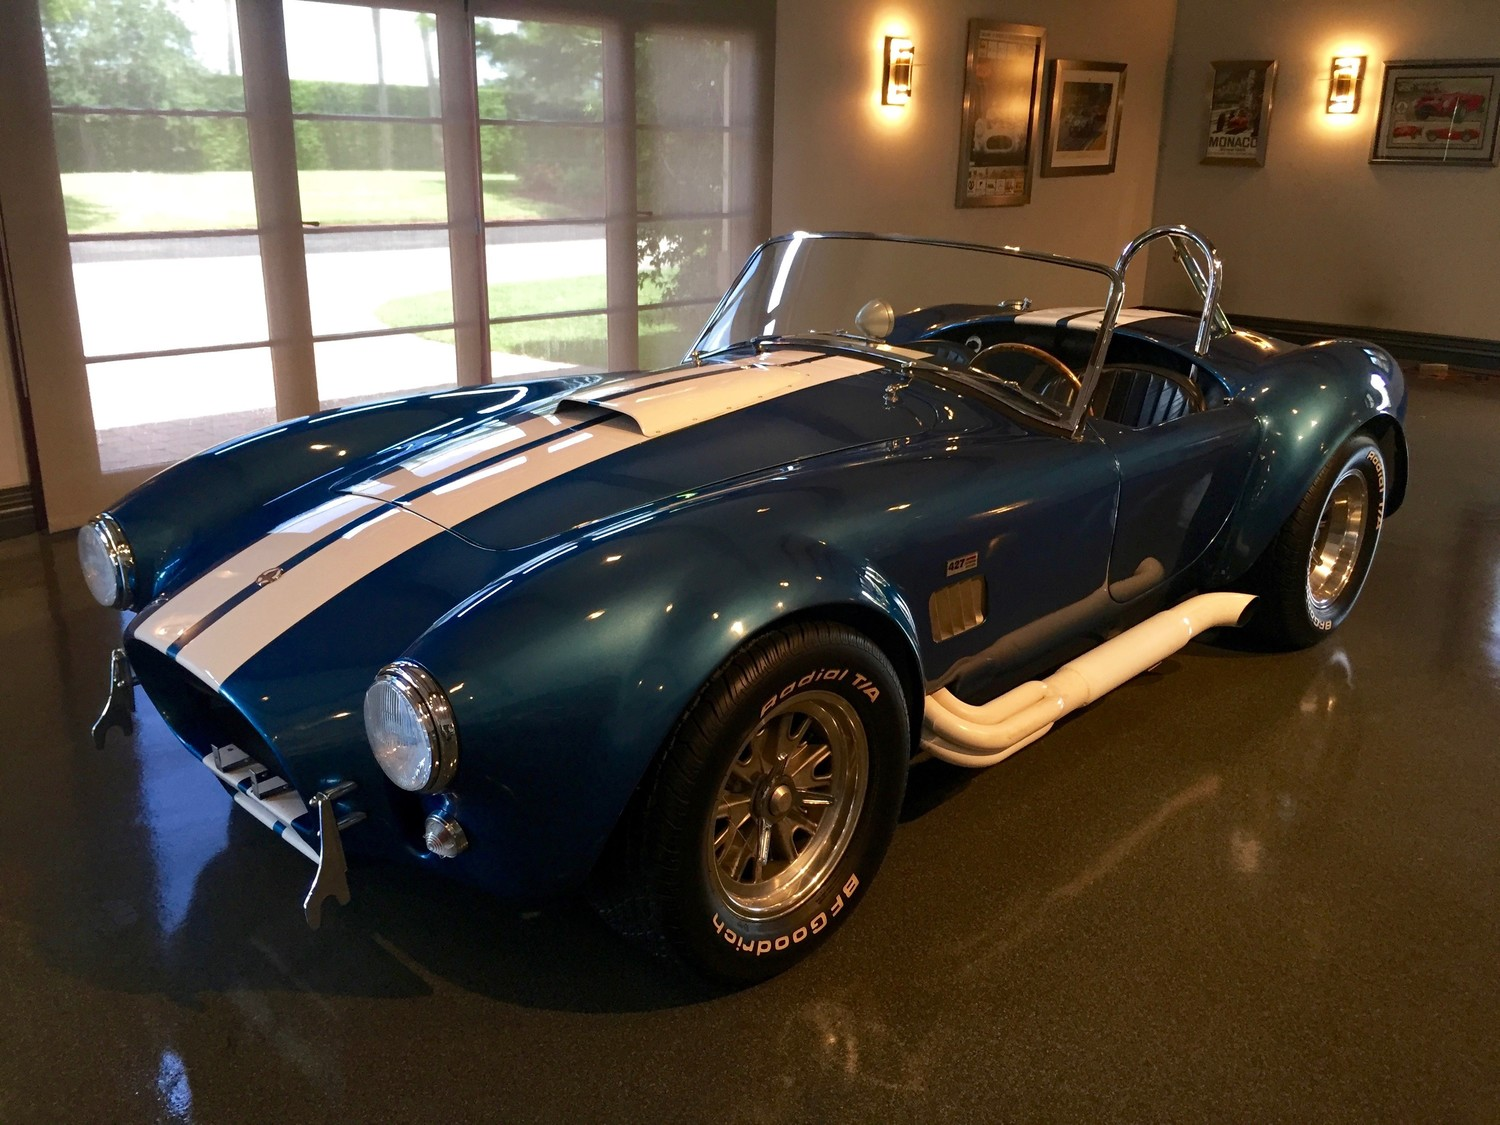 1966 Shelby Cobra 427 S/C for sale — The Car Experience